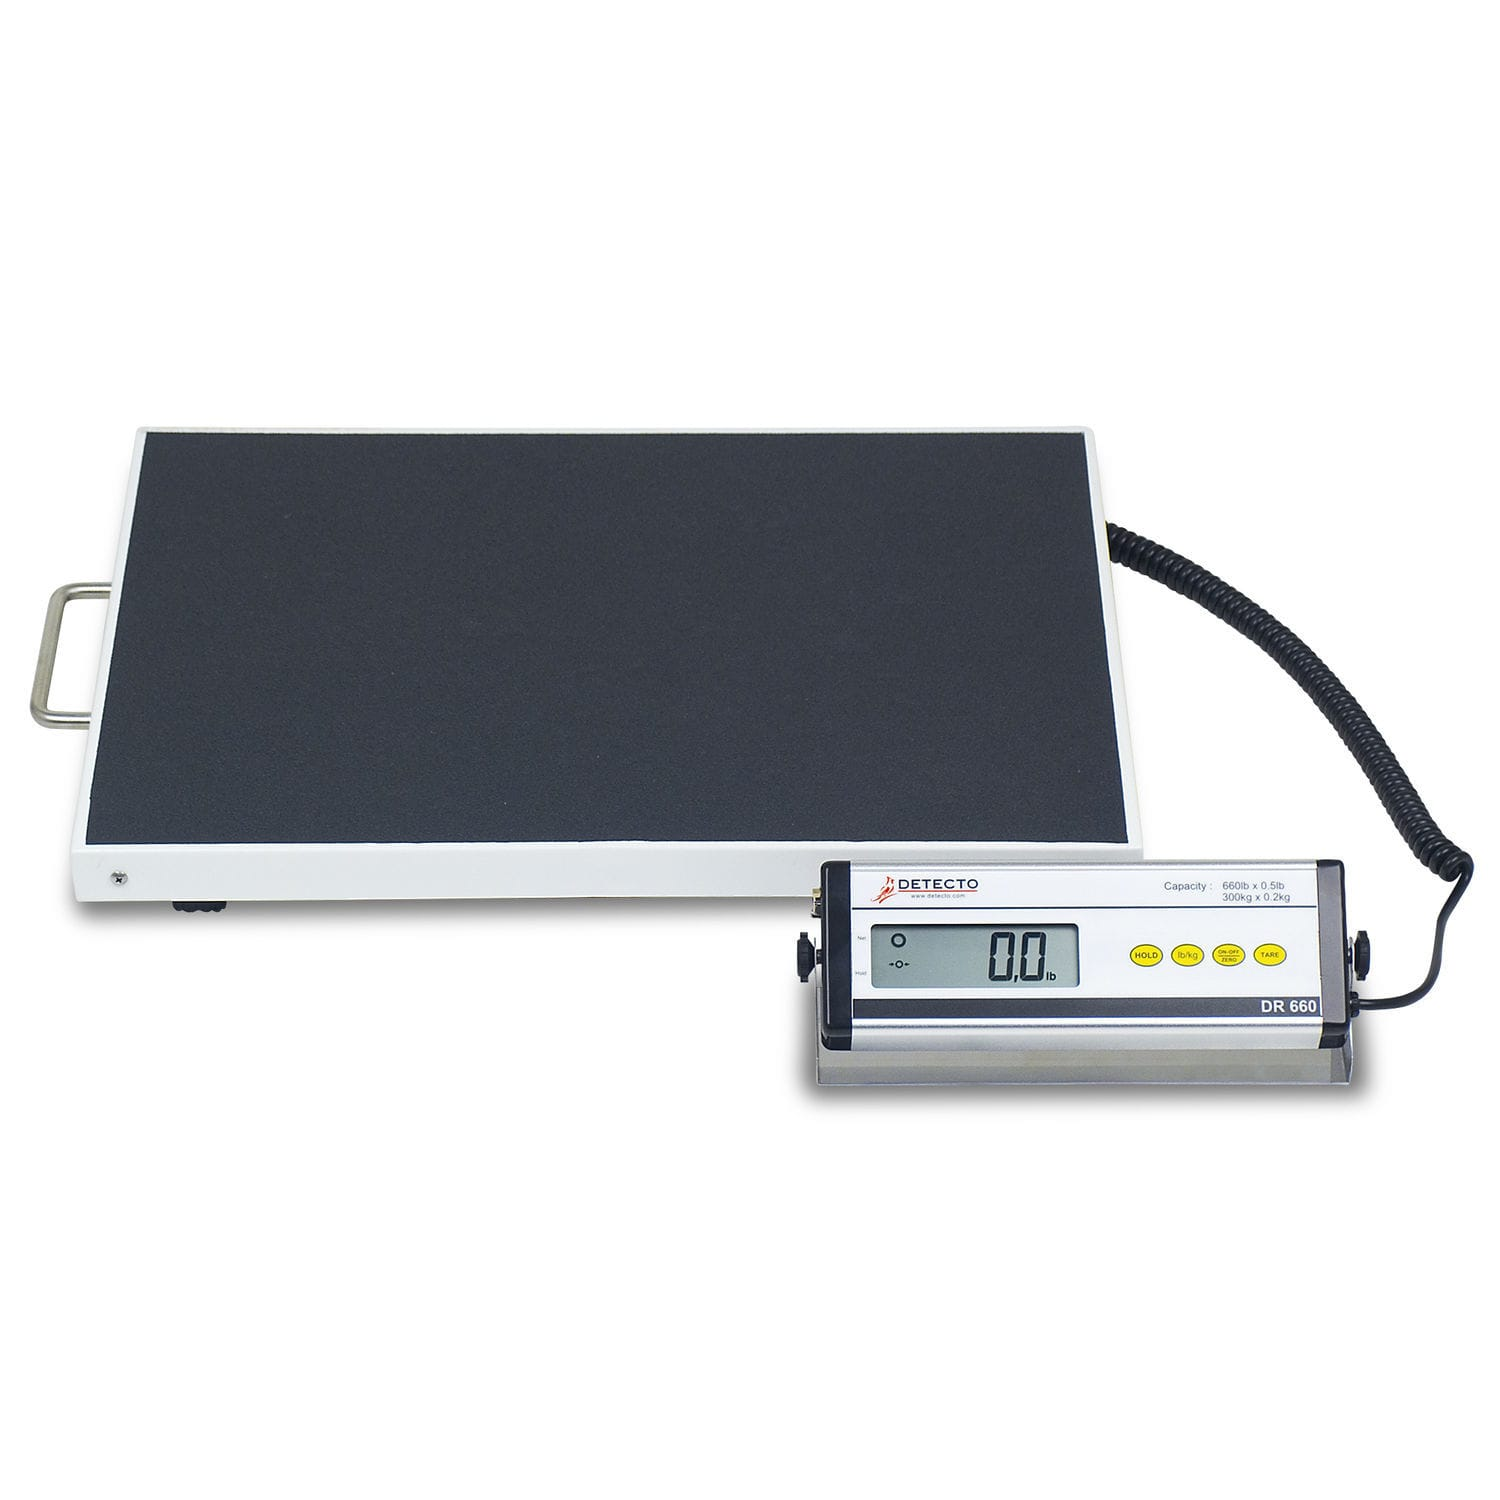 electronic patient weighing scales bariatric with lcd display with mobile display dr660 - Detecto Scales